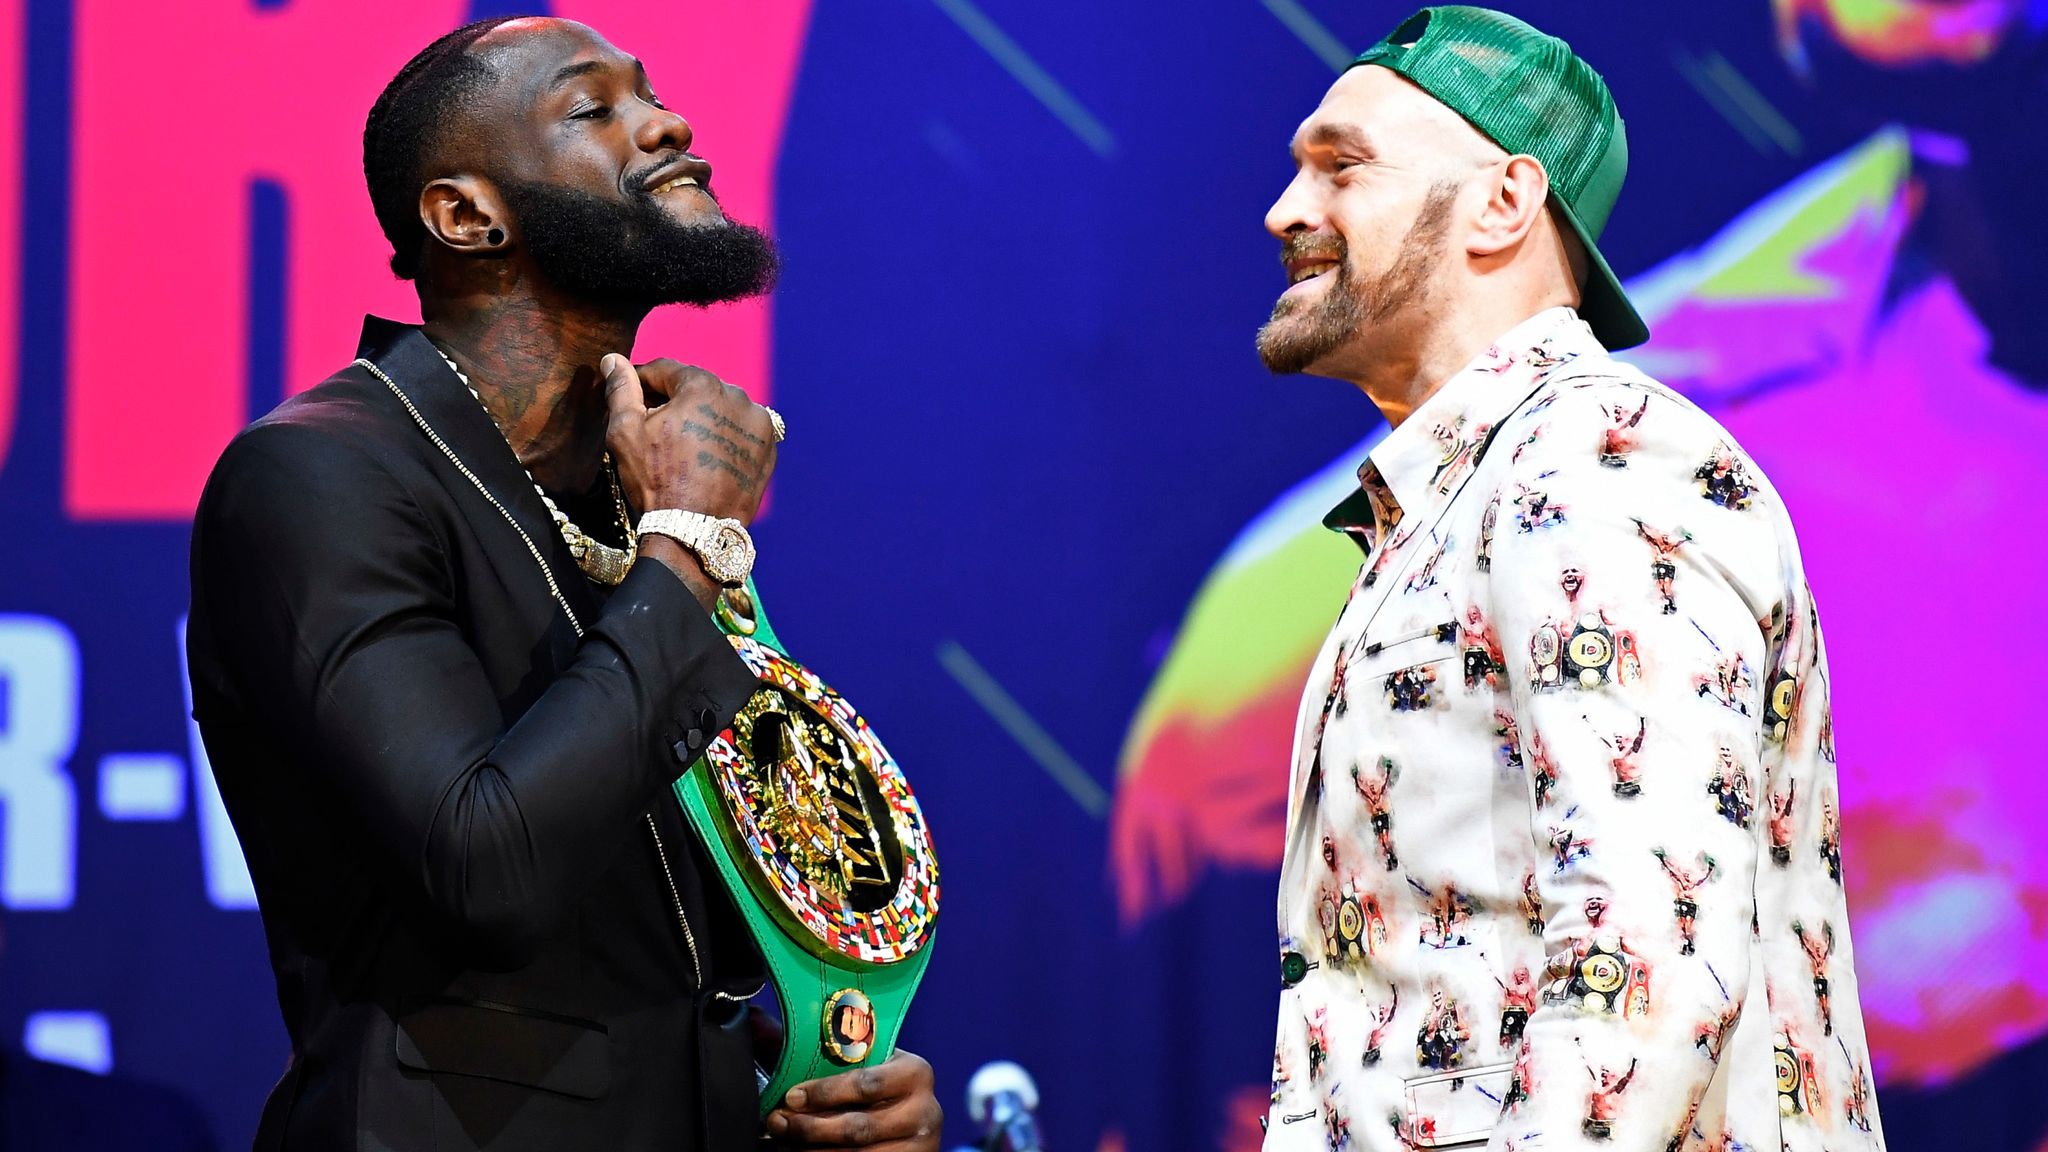 Chasing a fight with Tyson Fury became a destructive pursuit for David Price